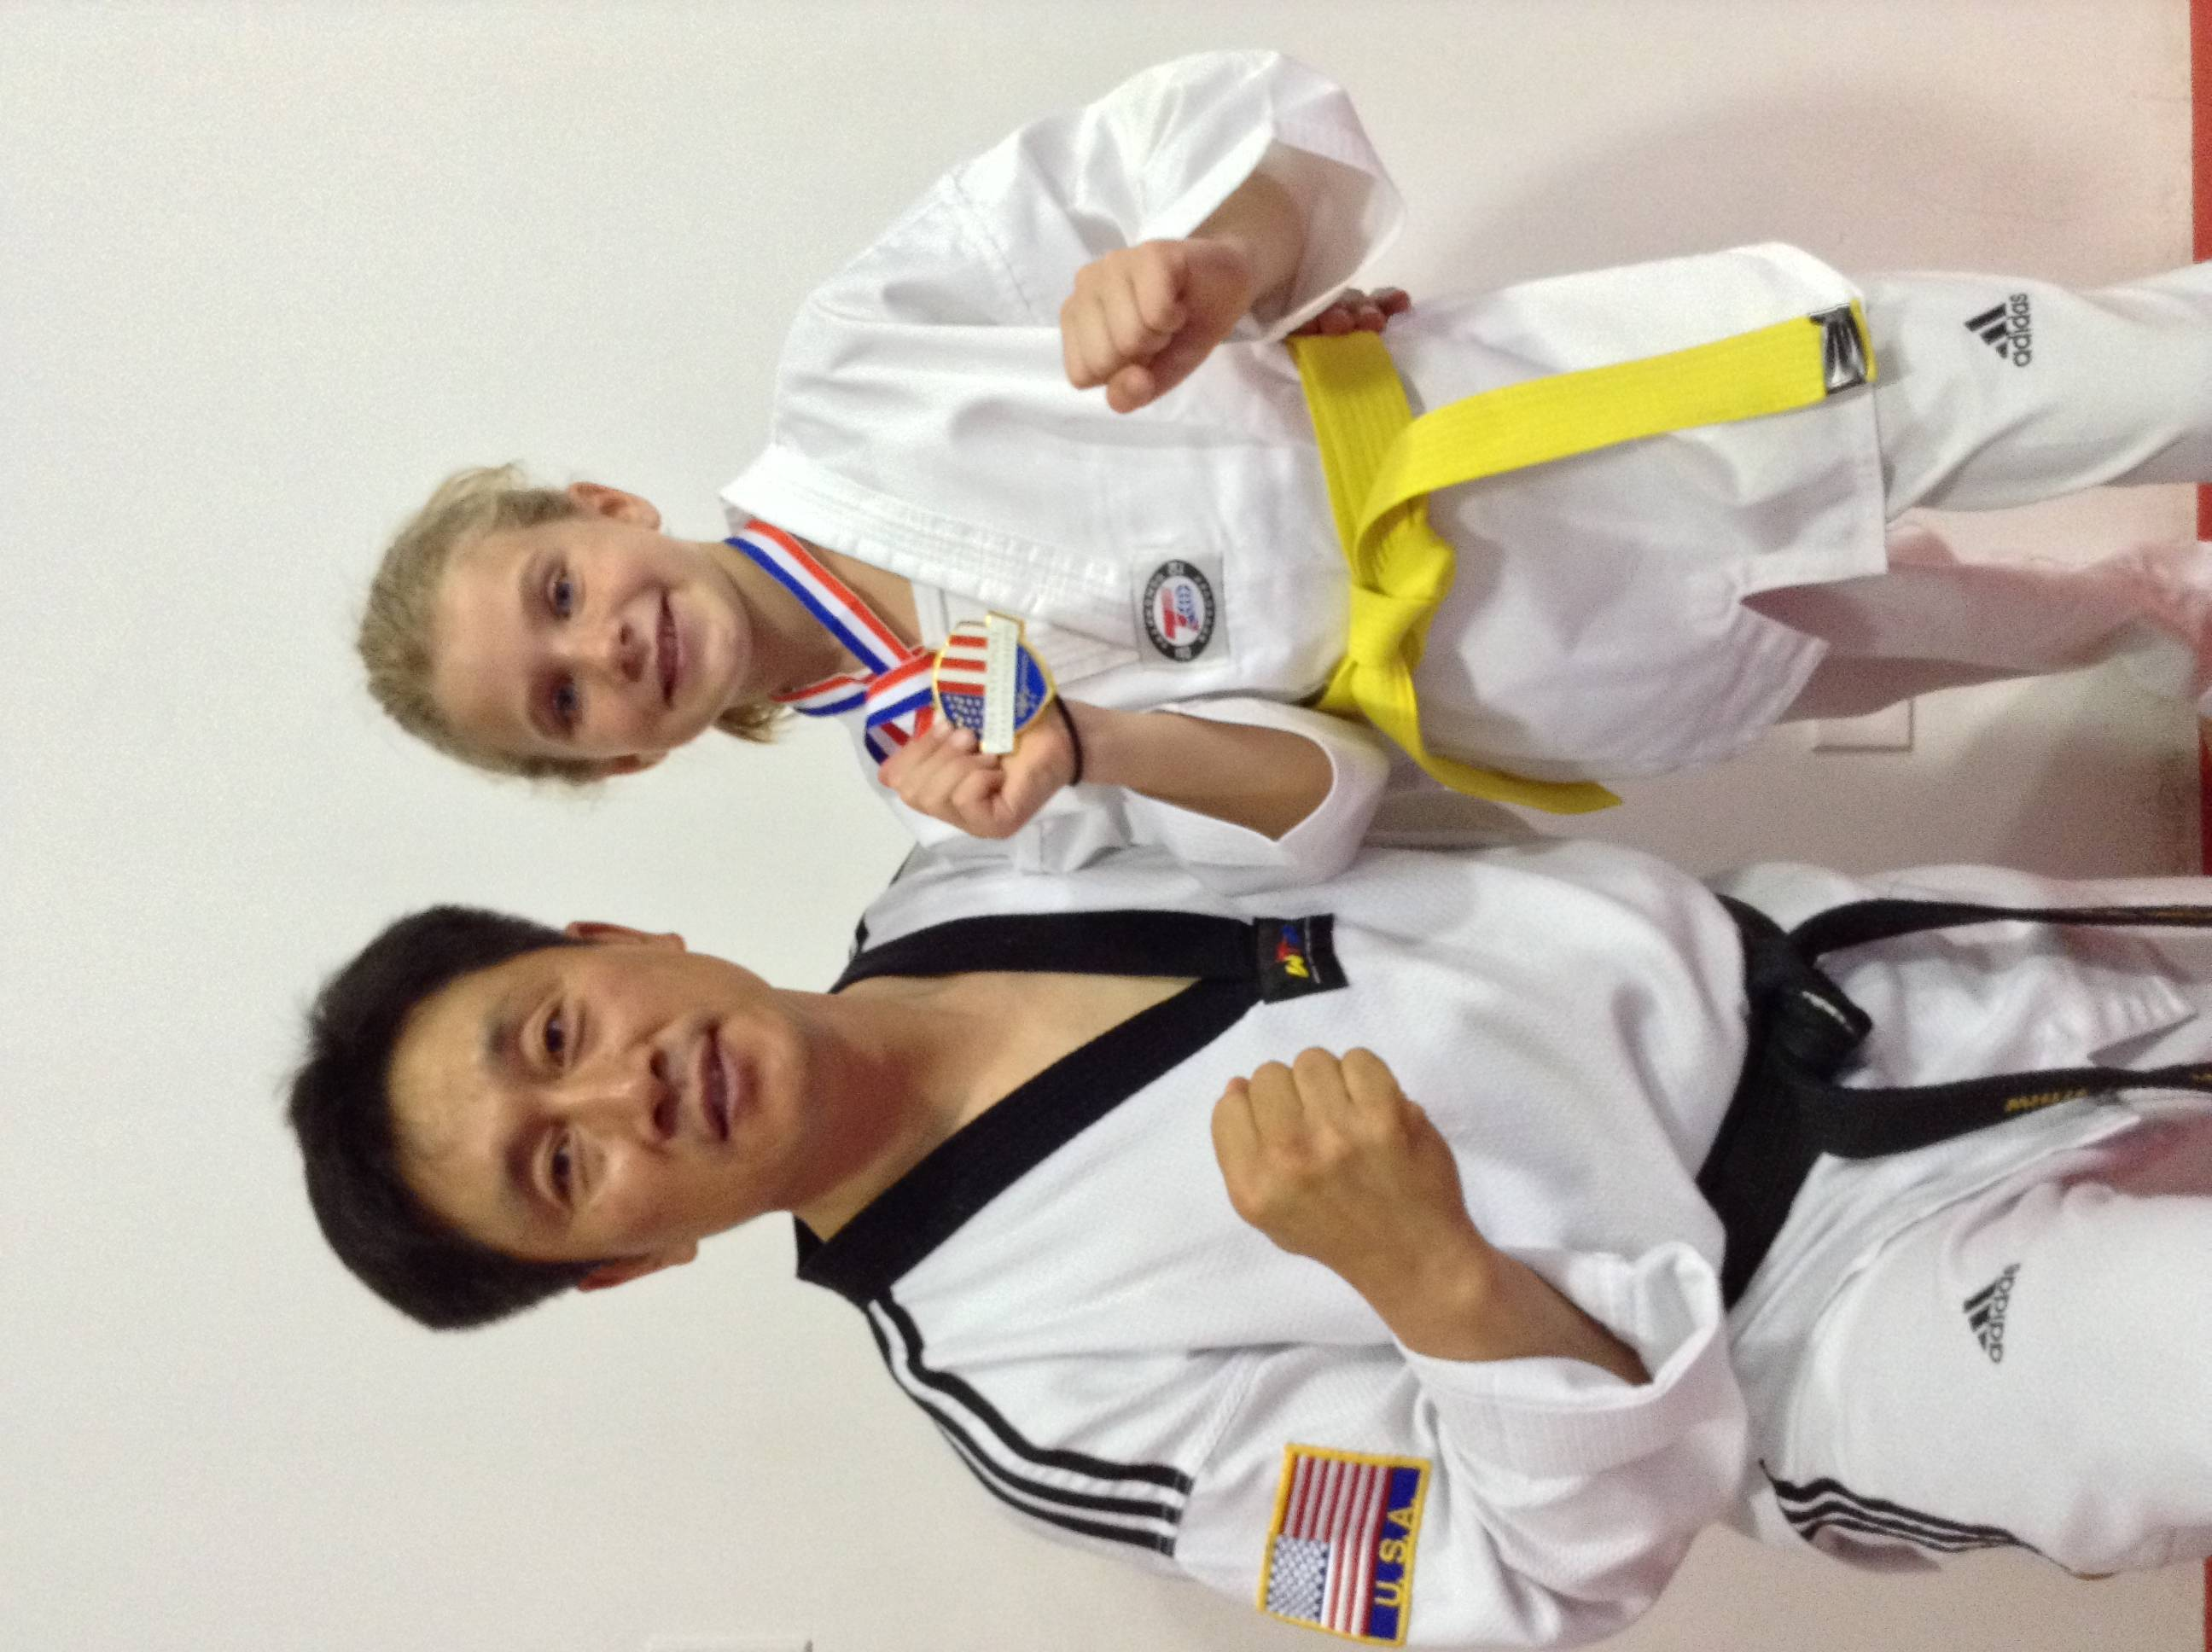 Head Master Shik Lee poses with his gold winning student Sophie Smithson, after her win at the USA Taekwondo National Championships.